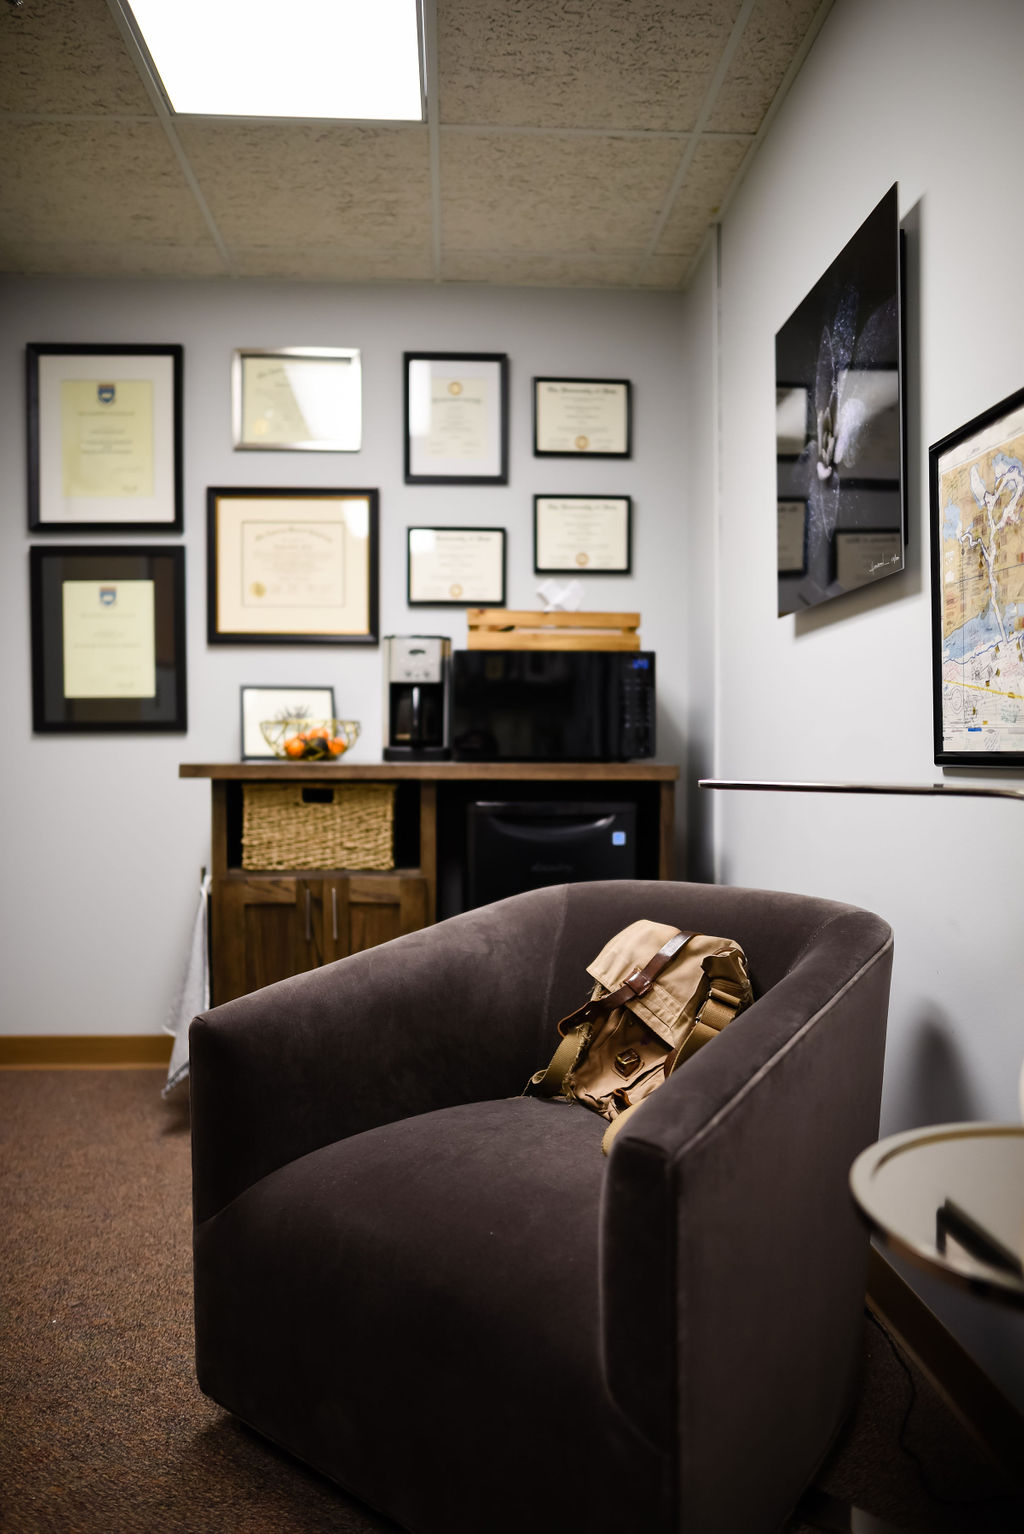 Josh Cook Office Makevoer from hprallandco.com | H. Prall & Co. Interior Decorating | Des Moines, IA